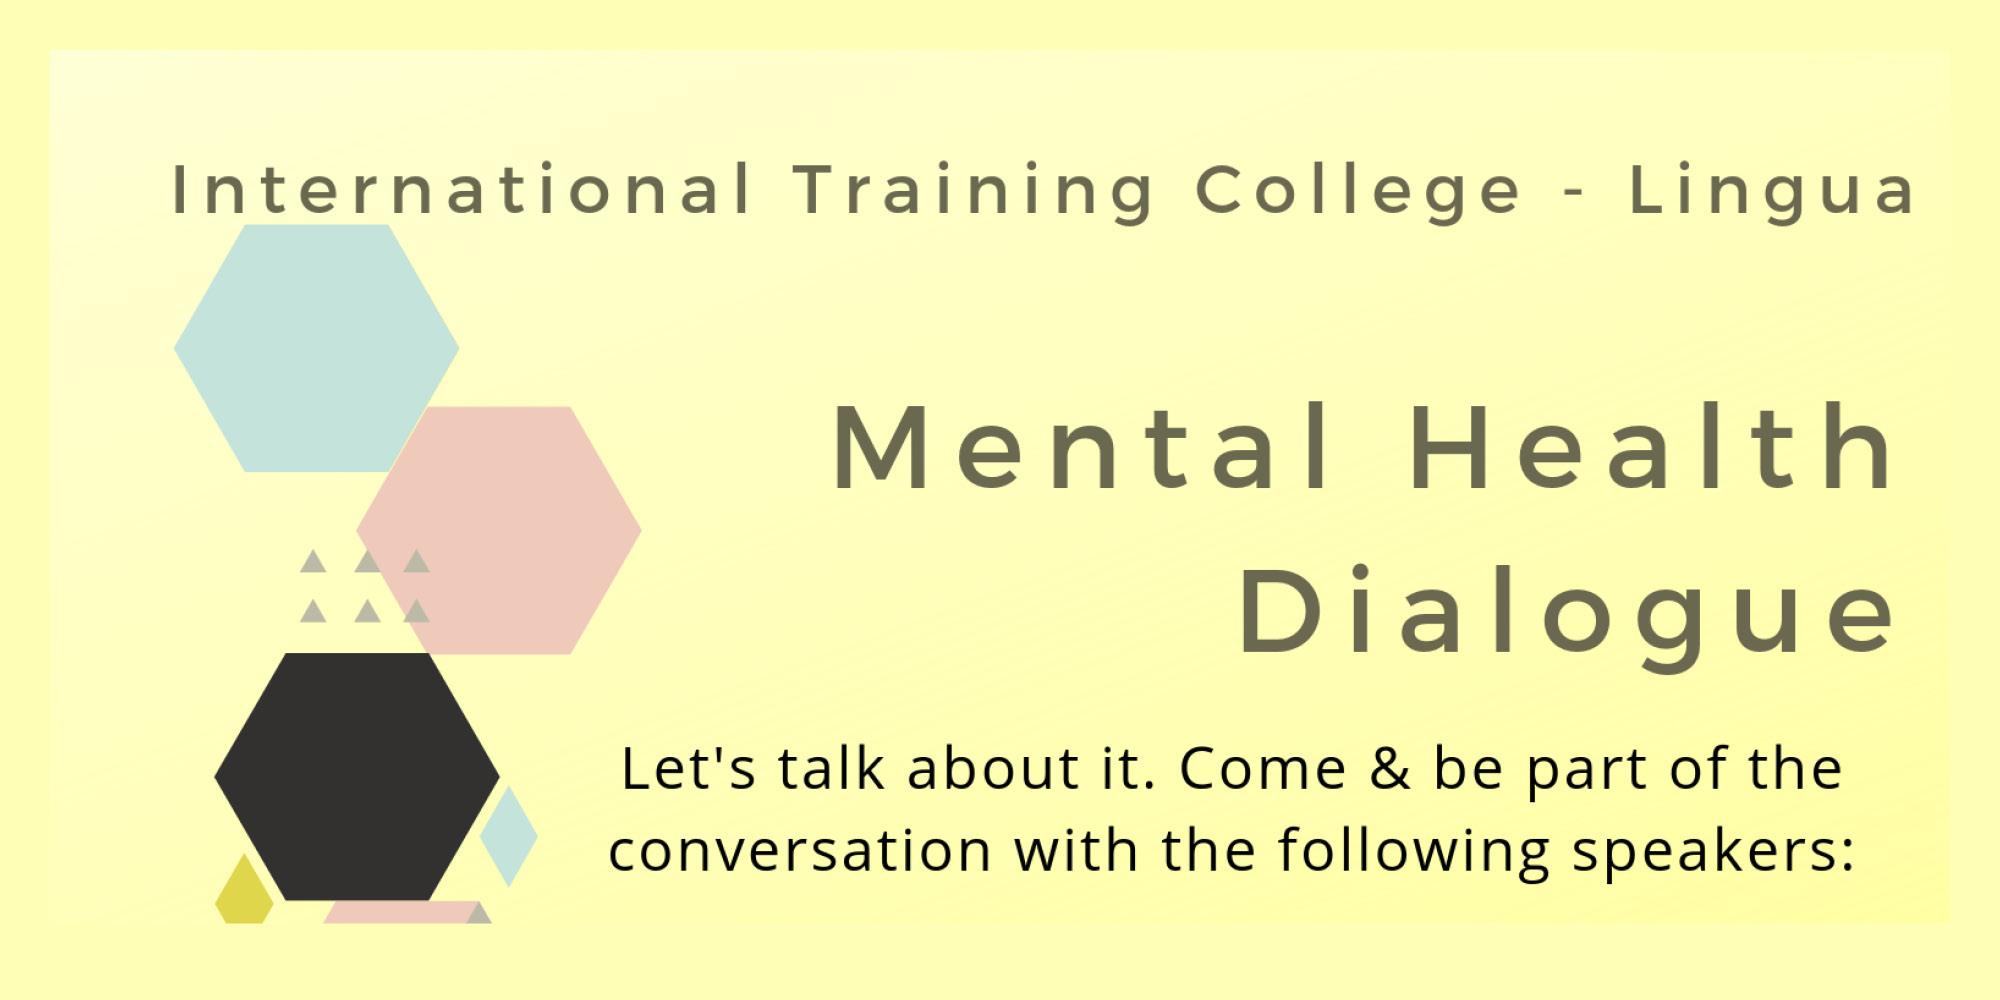 Mental Health Dialogue - Lingua College - Informanté